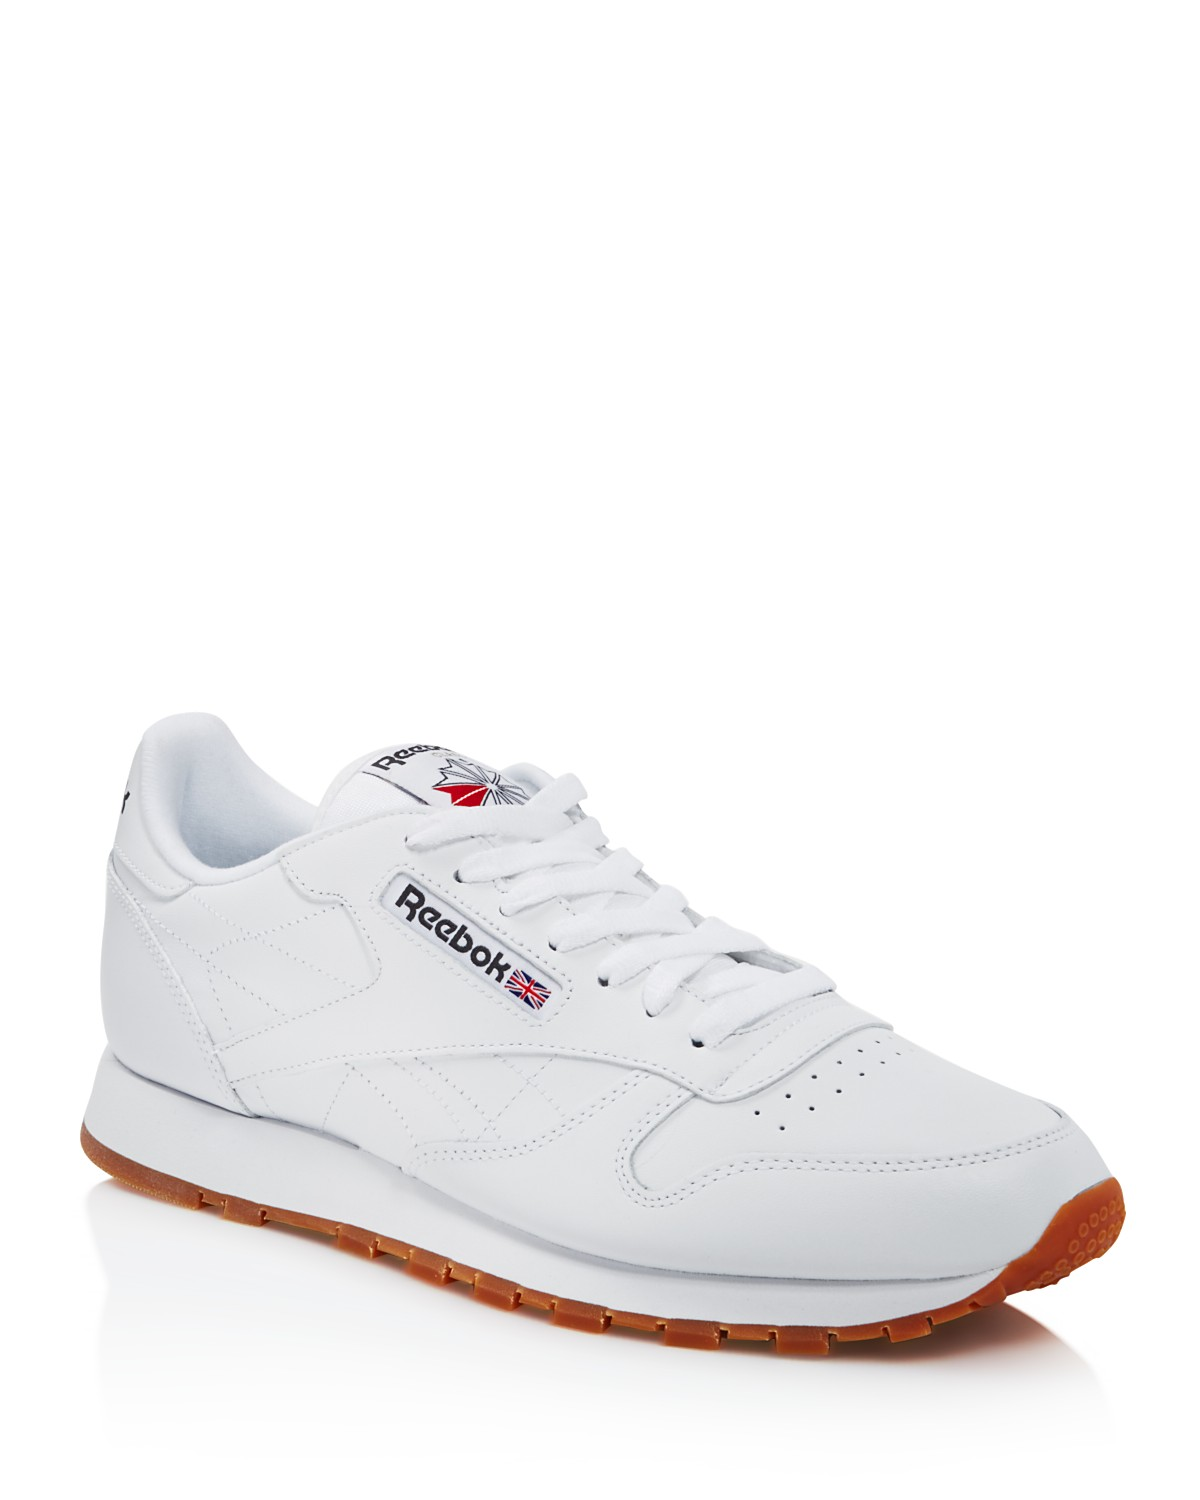 Reebok Men's Classic Leather Lace Up Sneakers mP5YxxbF